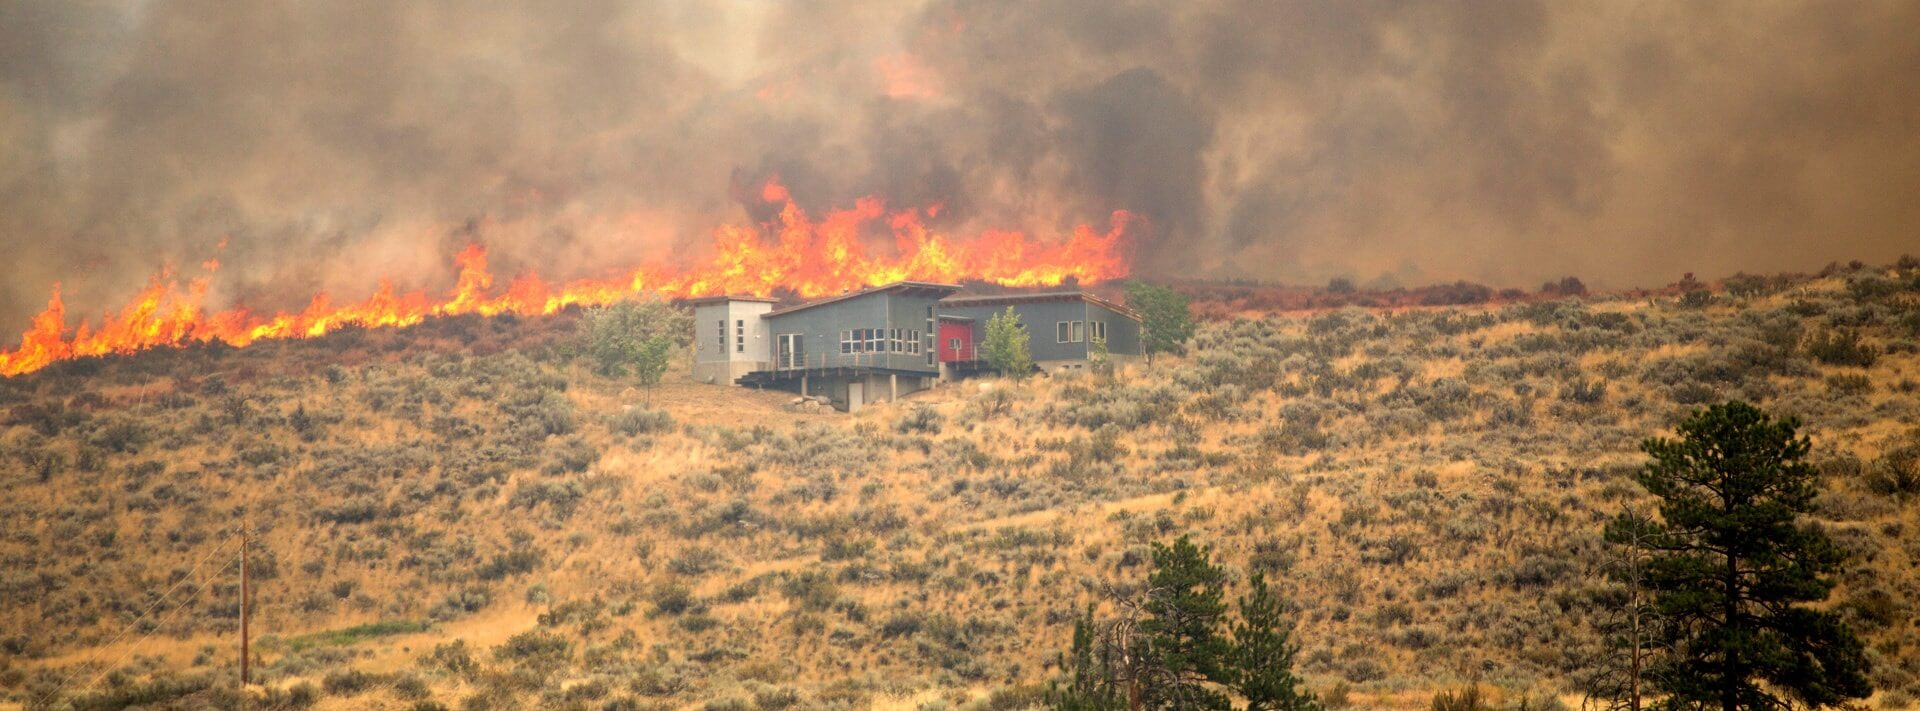 Wildfire protection system